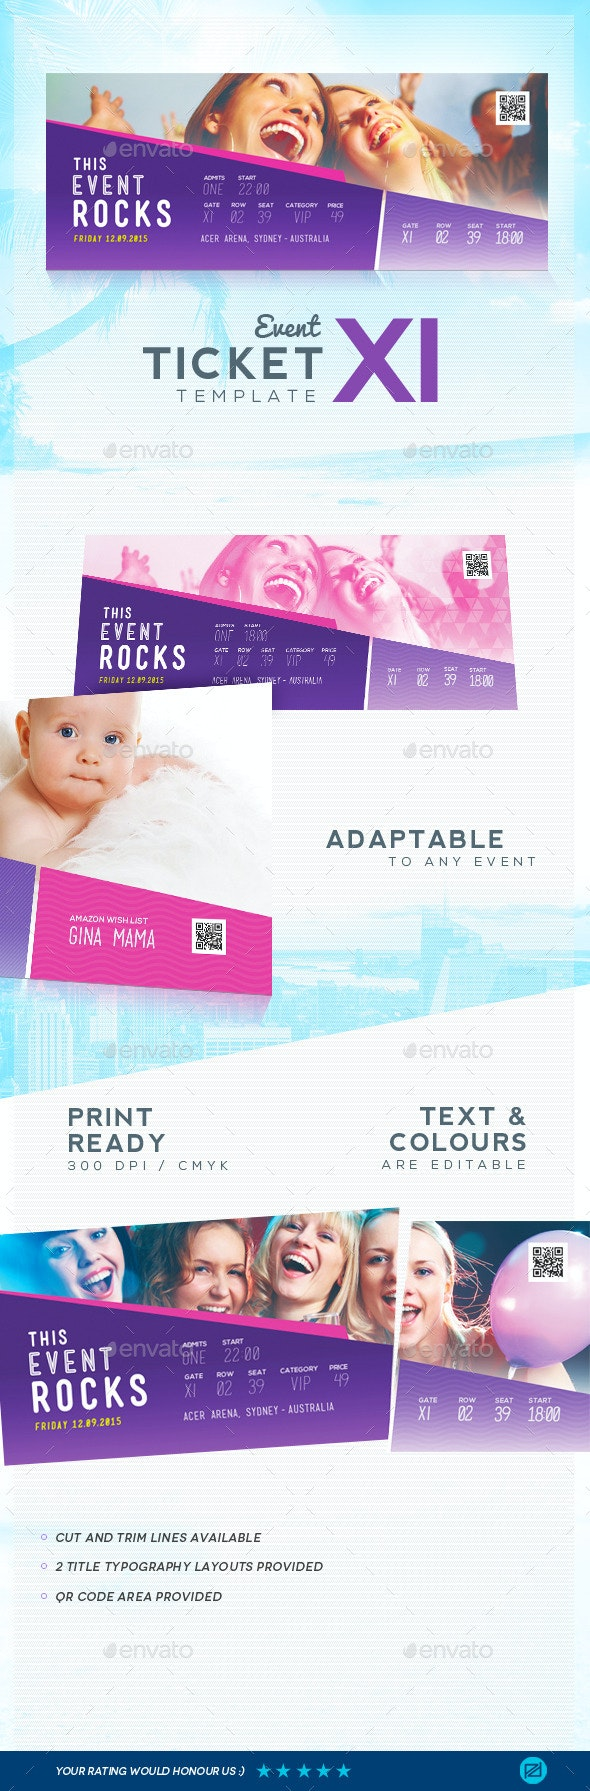 Event Ticket Template 11 - Miscellaneous Print Templates